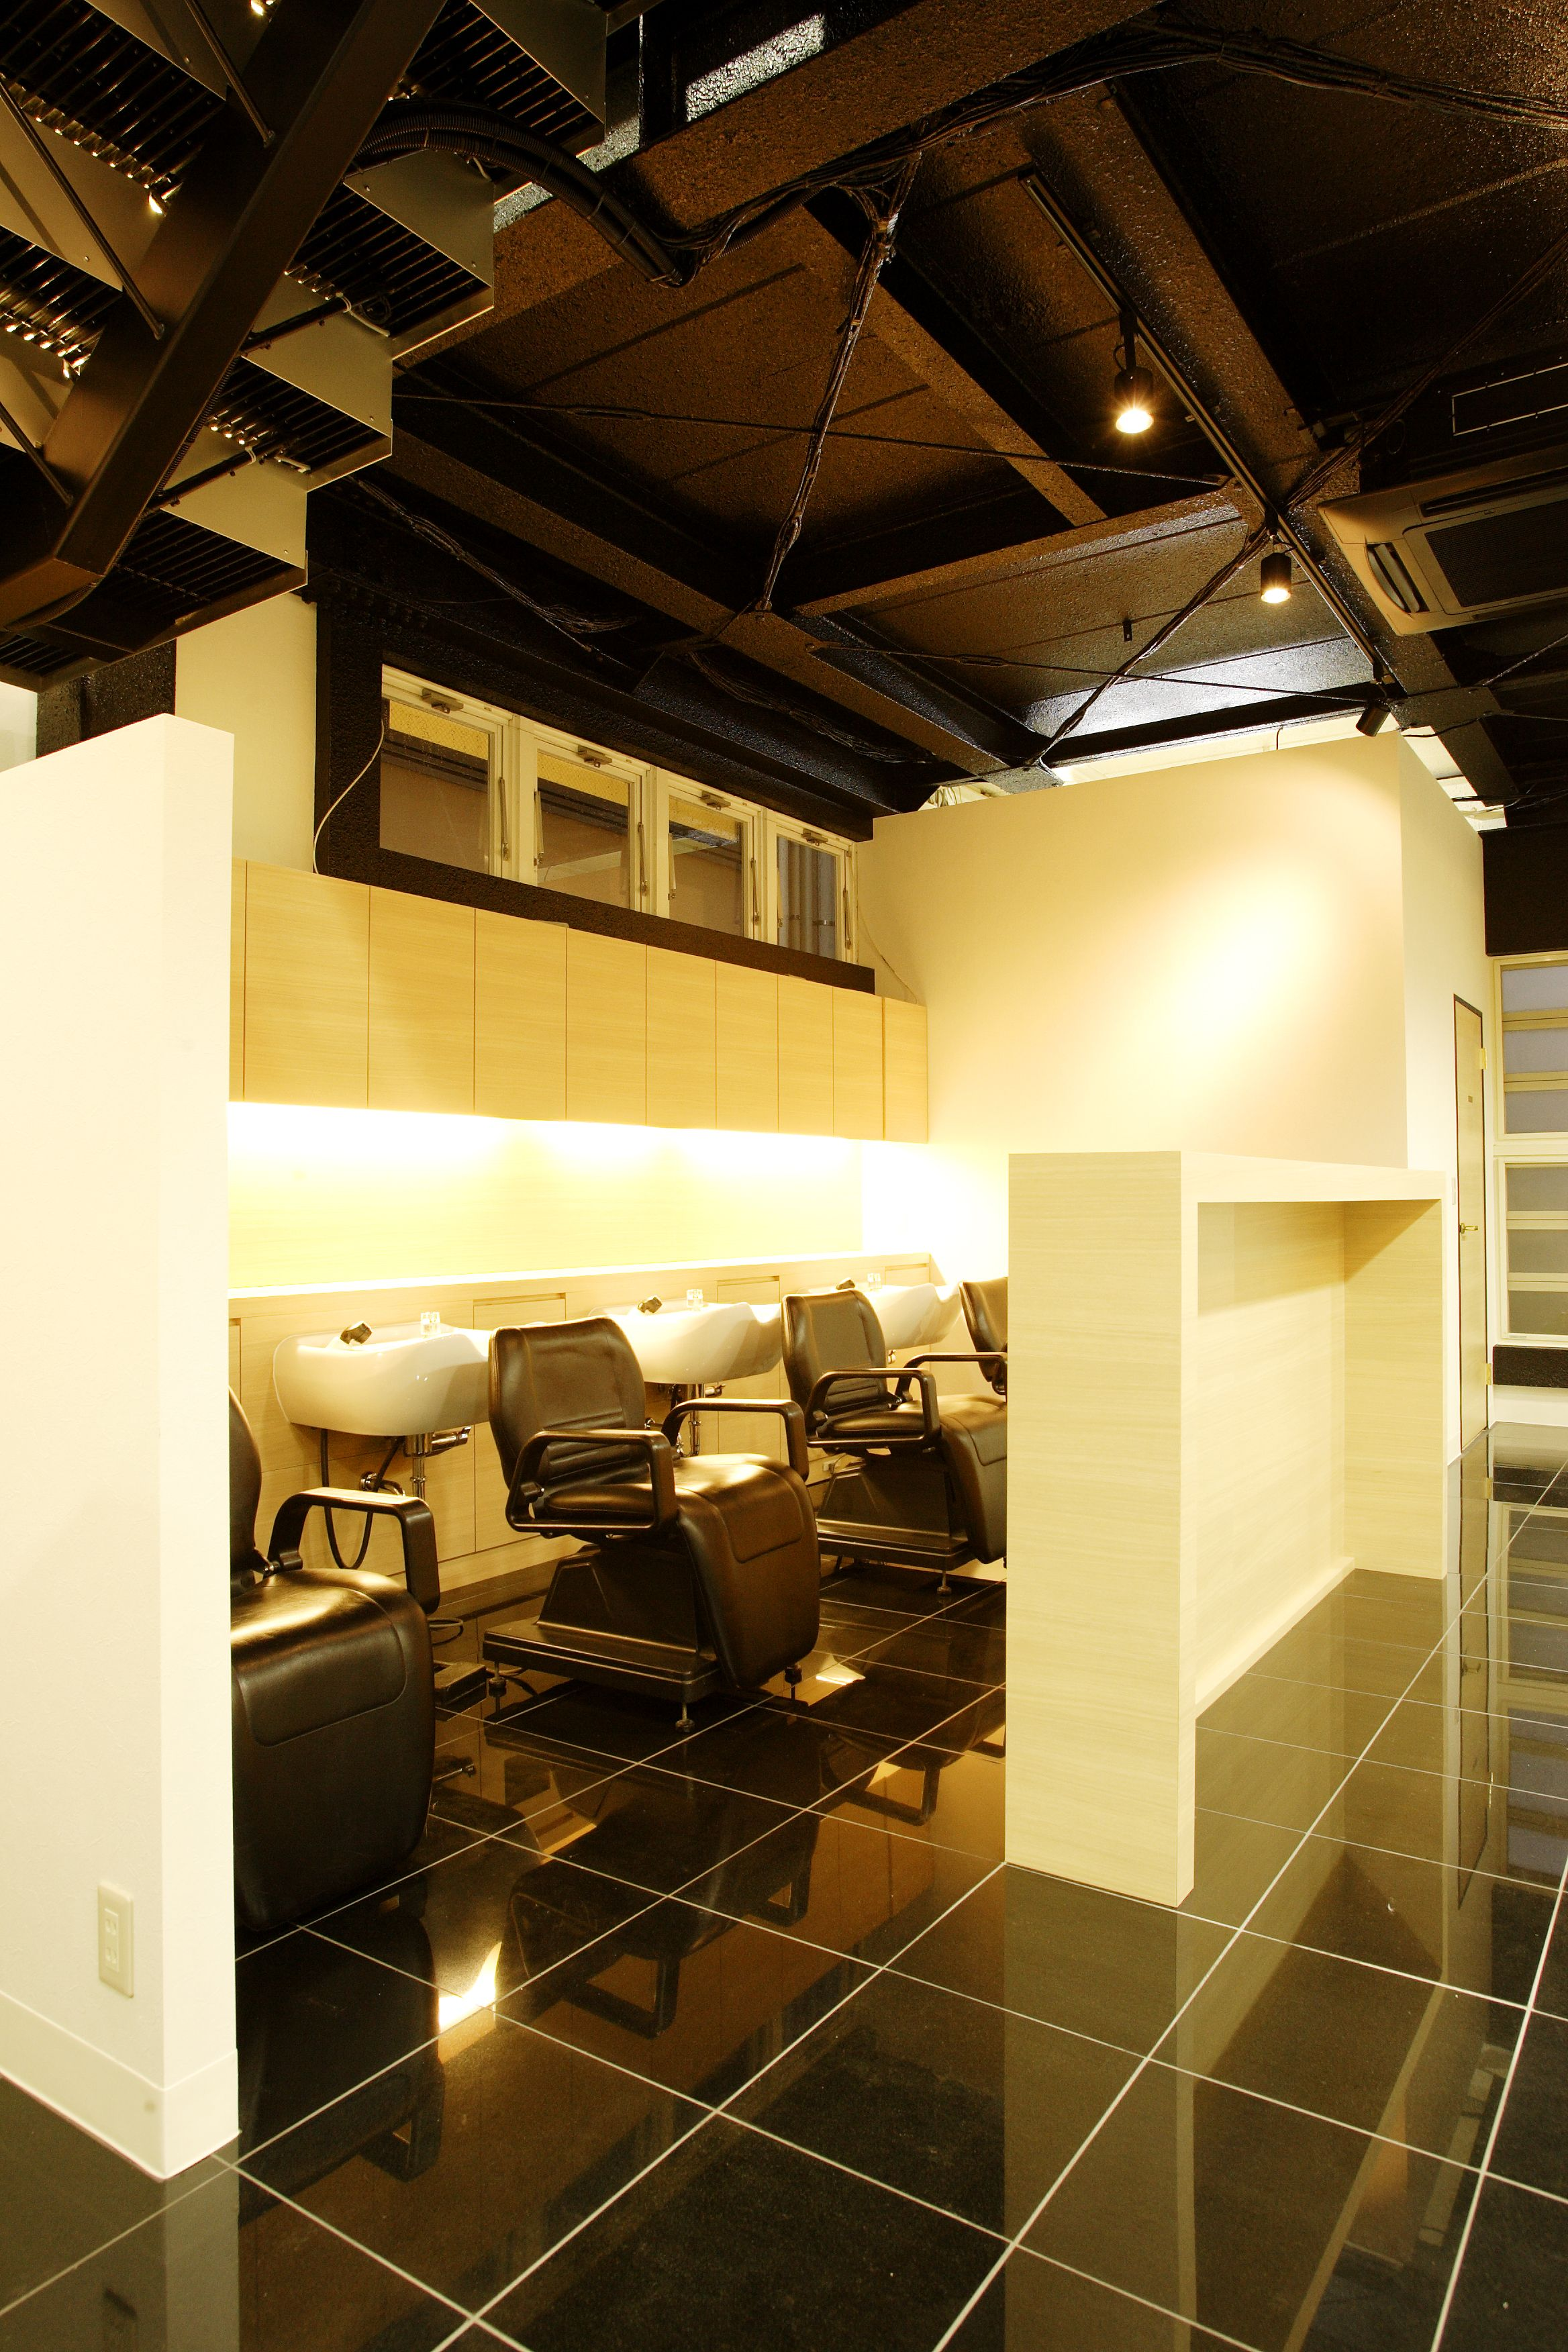 Beauty salon interior - shampoo room half wall | INSPIRATION ...